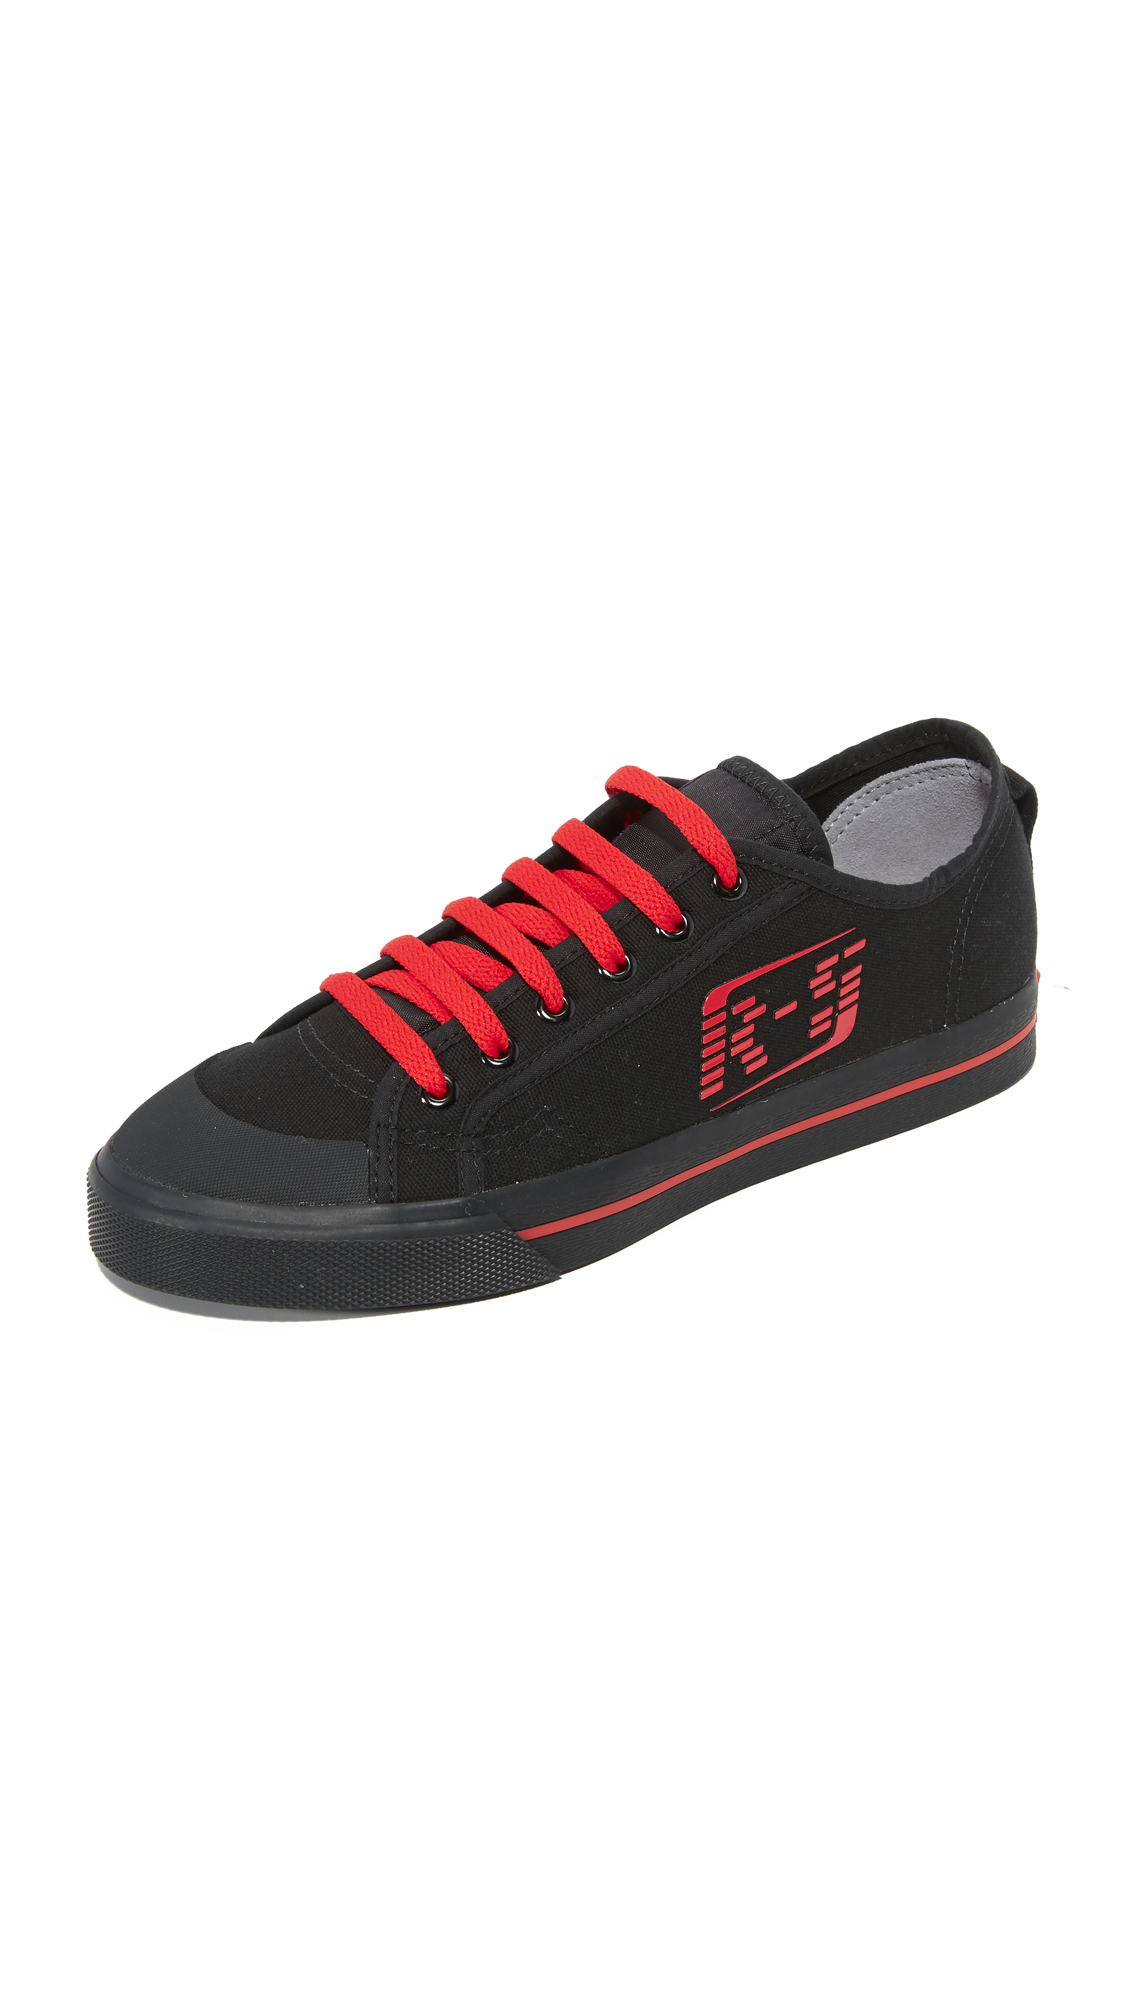 Adidas Raf Simons Matrix Spirit Sneakers - Black/Tomato/Black at Shopbop